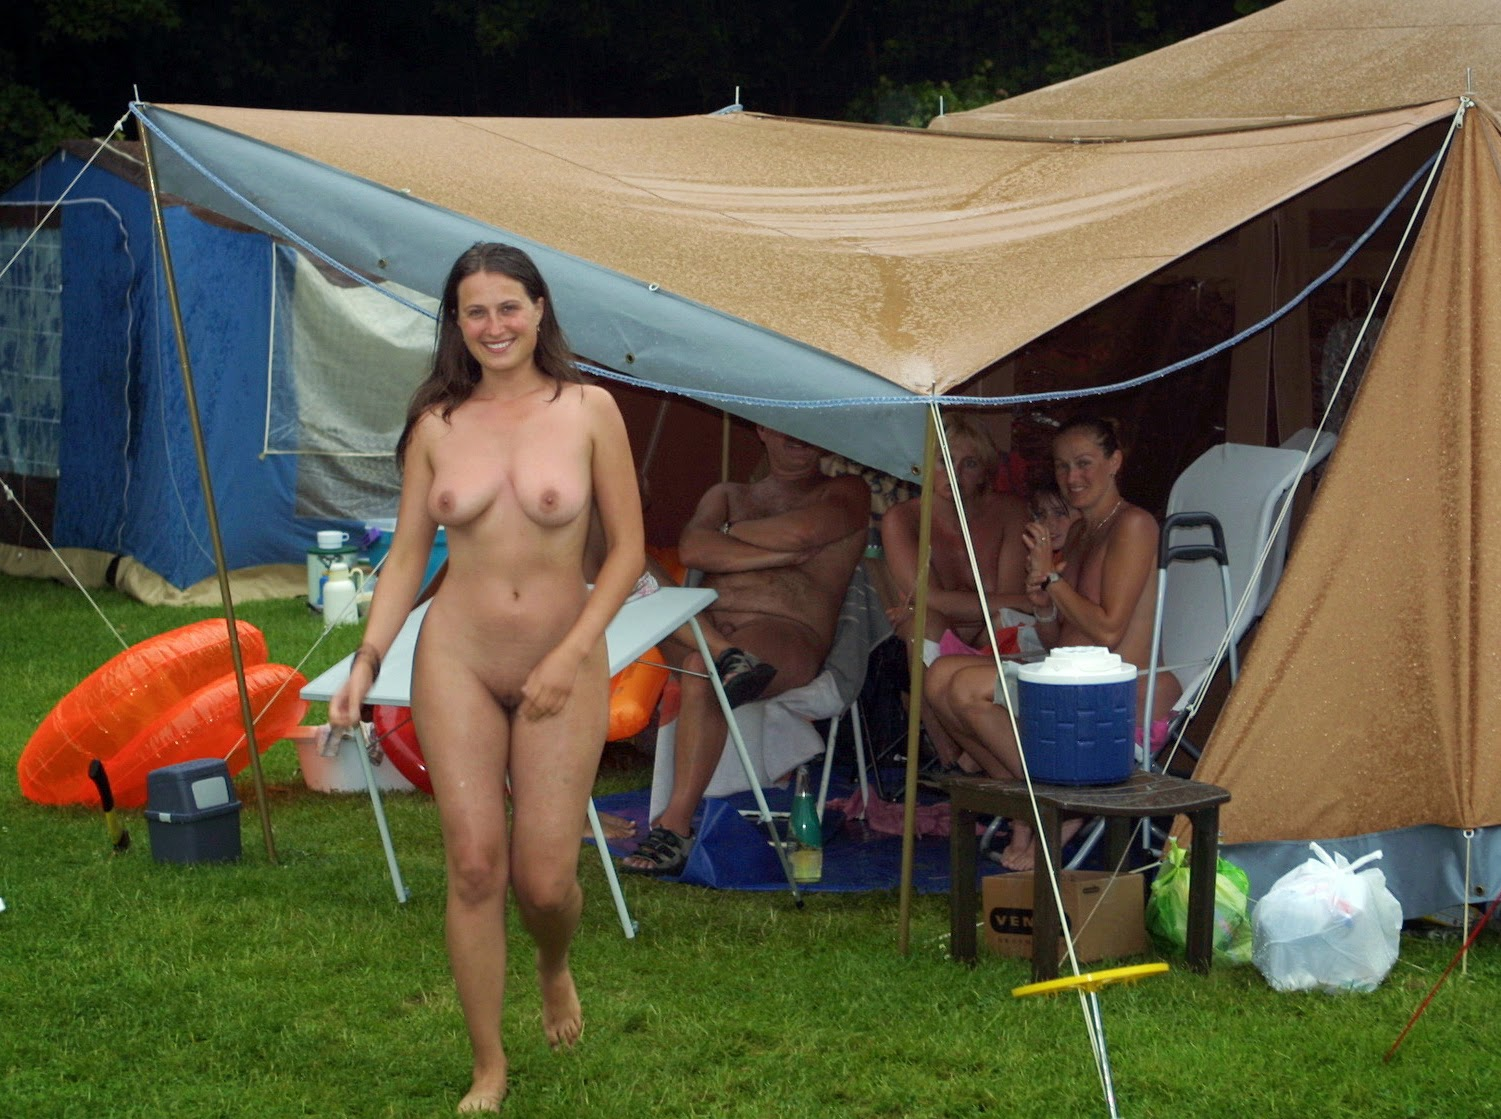 Sorry, this Holland naturist family nudist theme